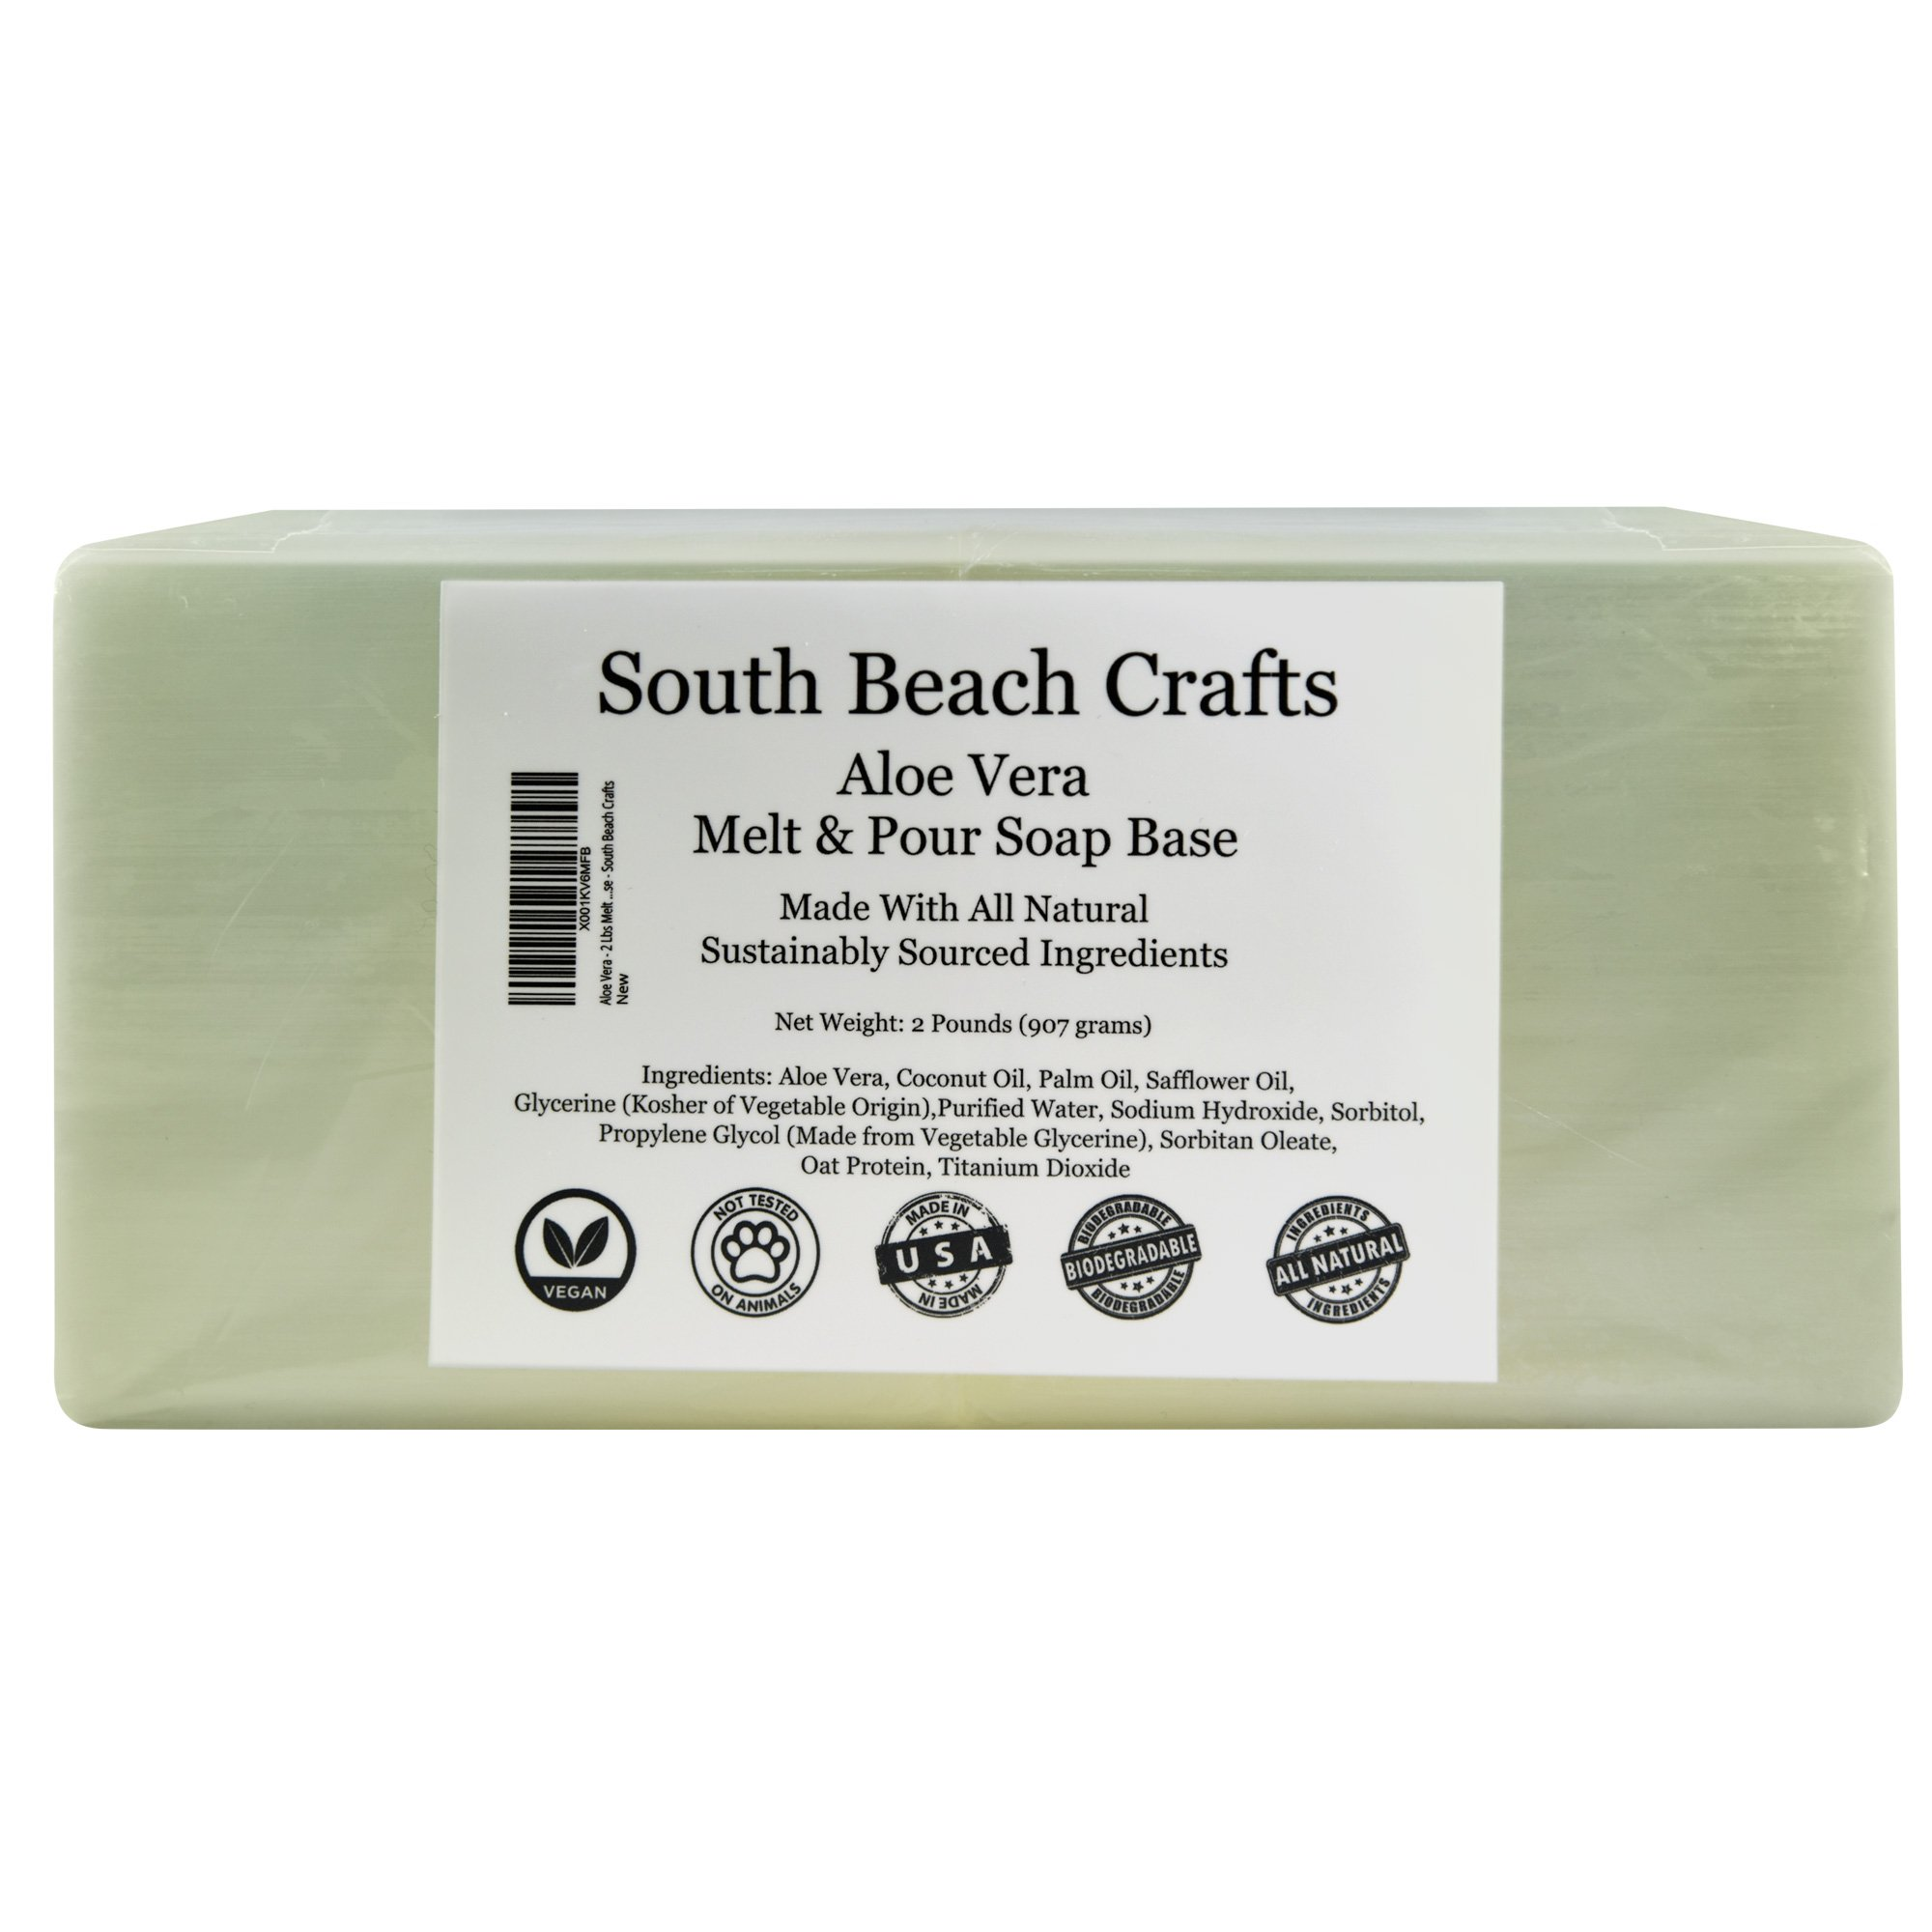 Aloe Vera - 2 Lbs Melt and Pour Soap Base - South Beach Crafts